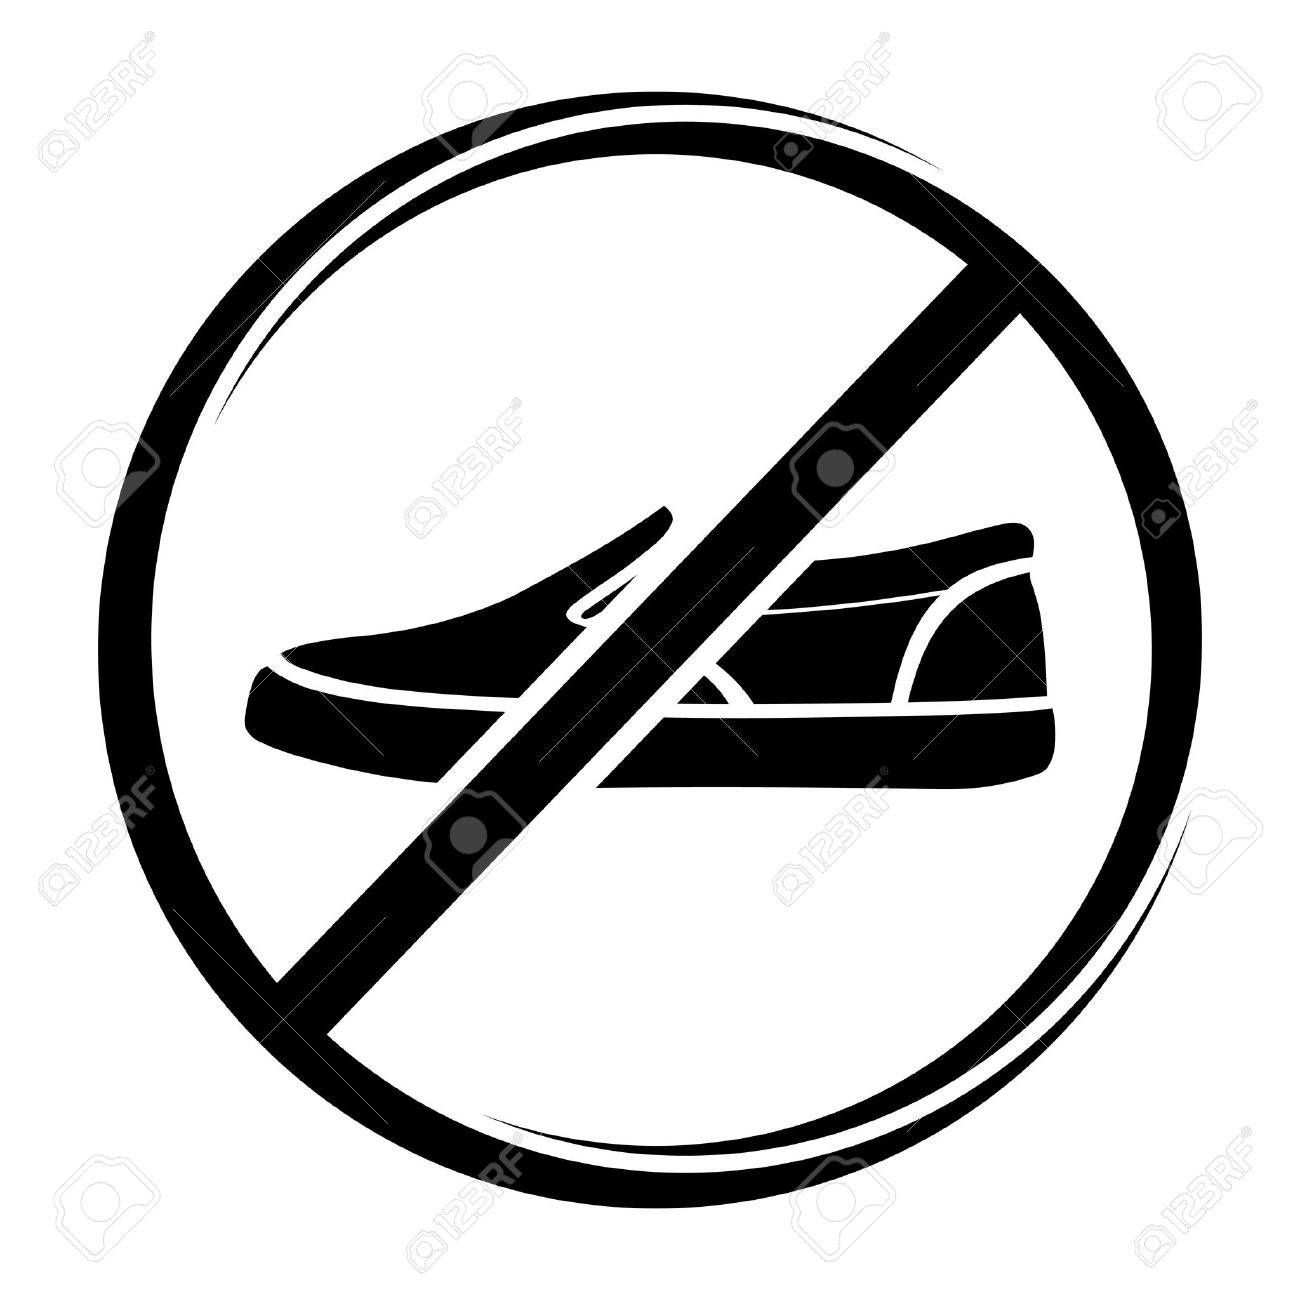 No shoes sign Stock Vector - 19193366